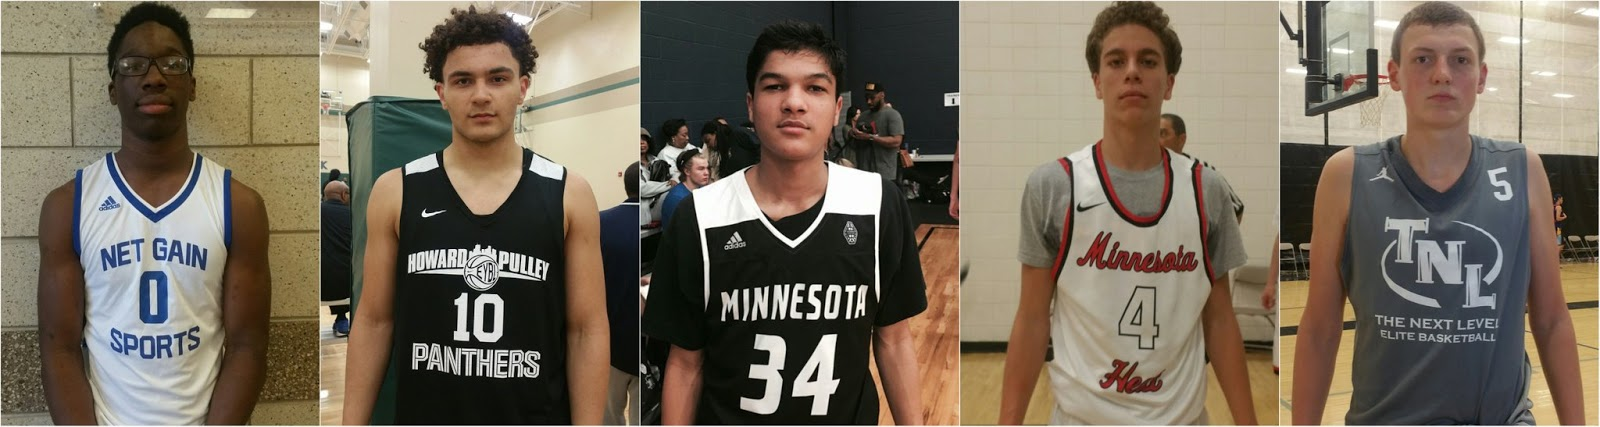 _: Minnesota Hoopers Stand Up 2019 Class Teams